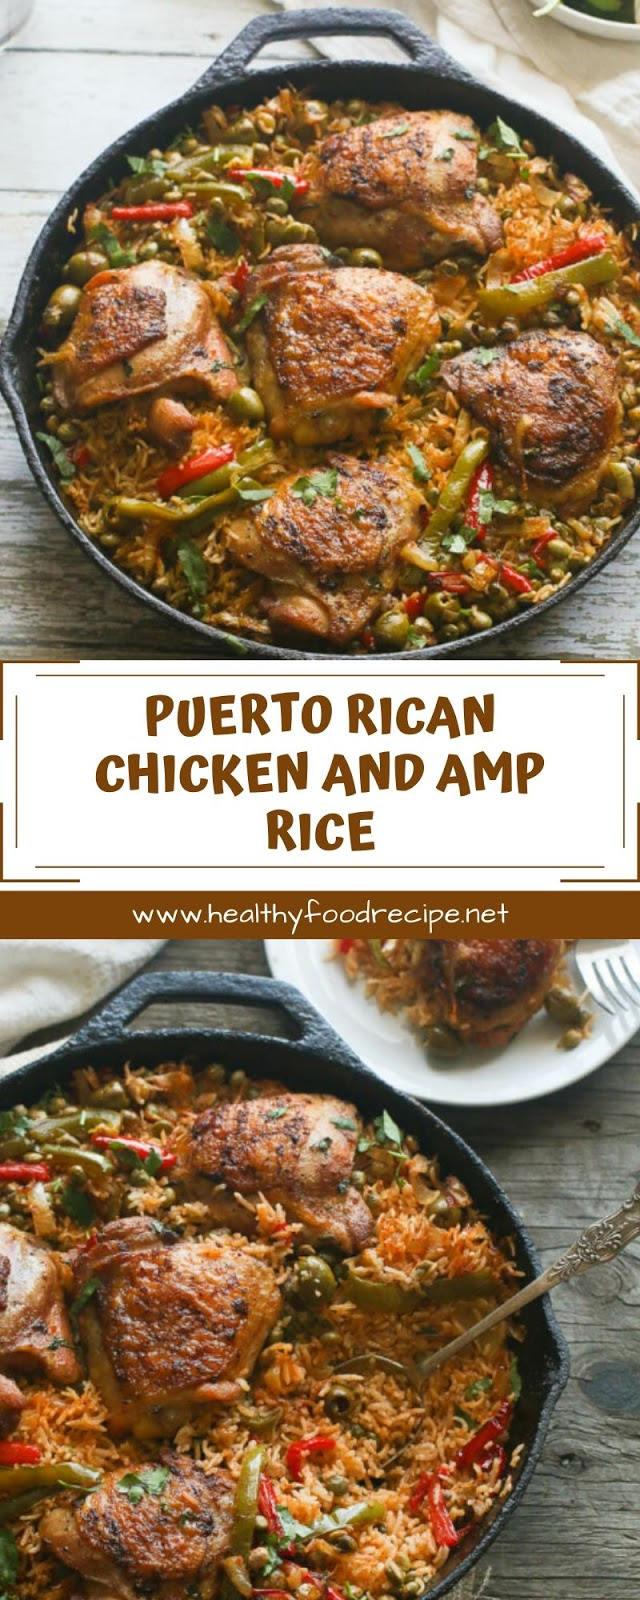 PUERTO RICAN CHICKEN AND AMP RICE